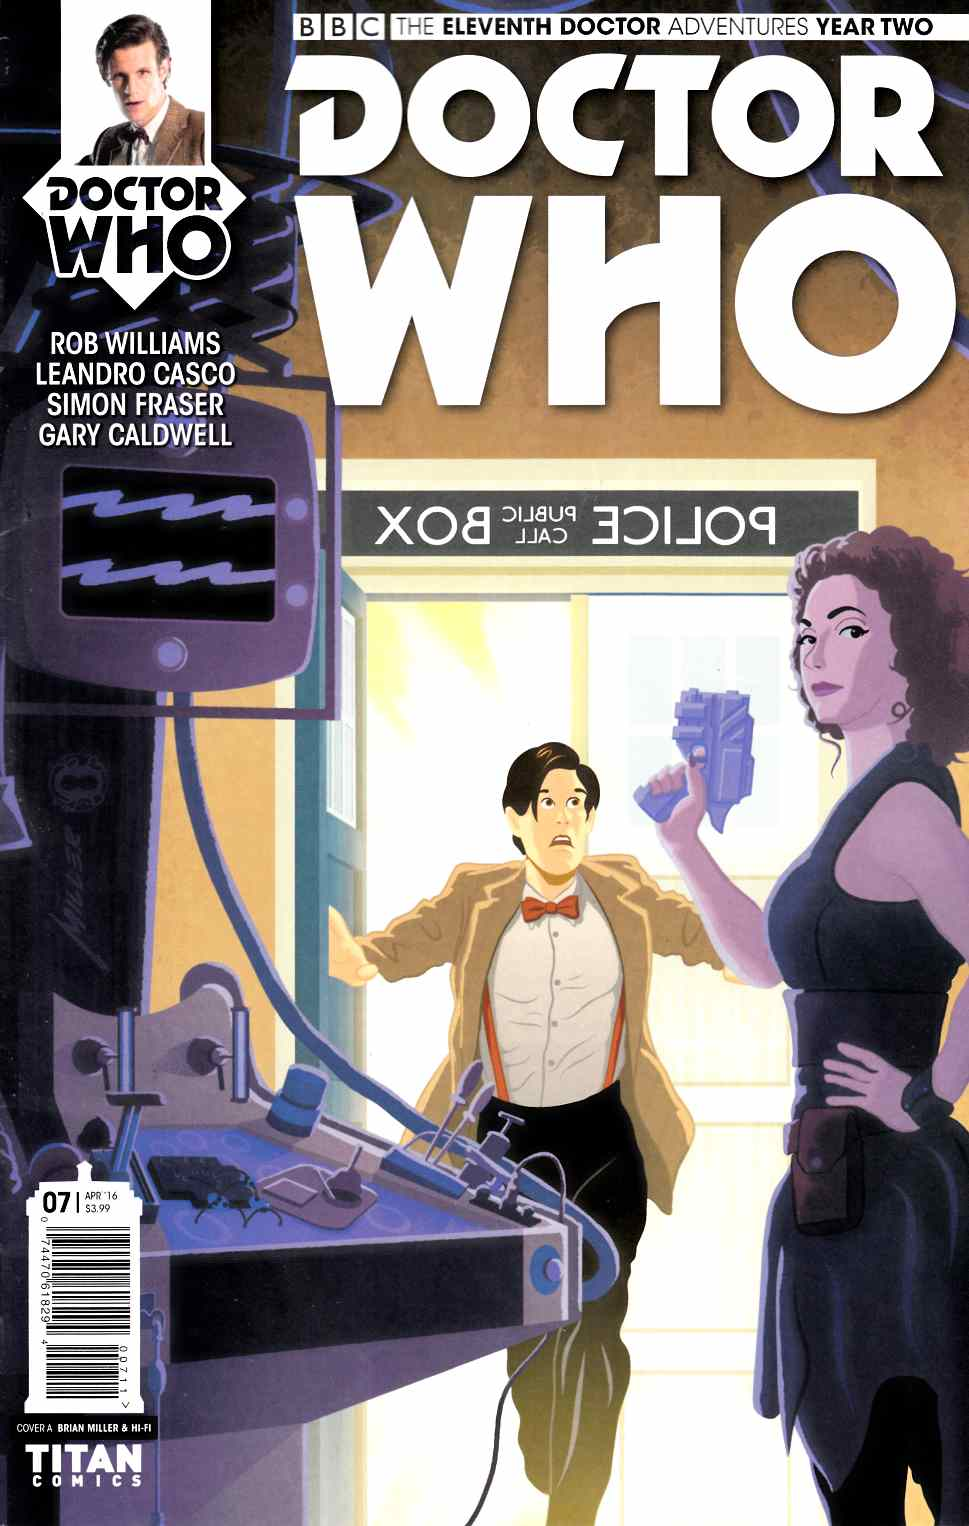 Doctor Who 11th Doctor Year Two #7 Cover A [Titan Comic]